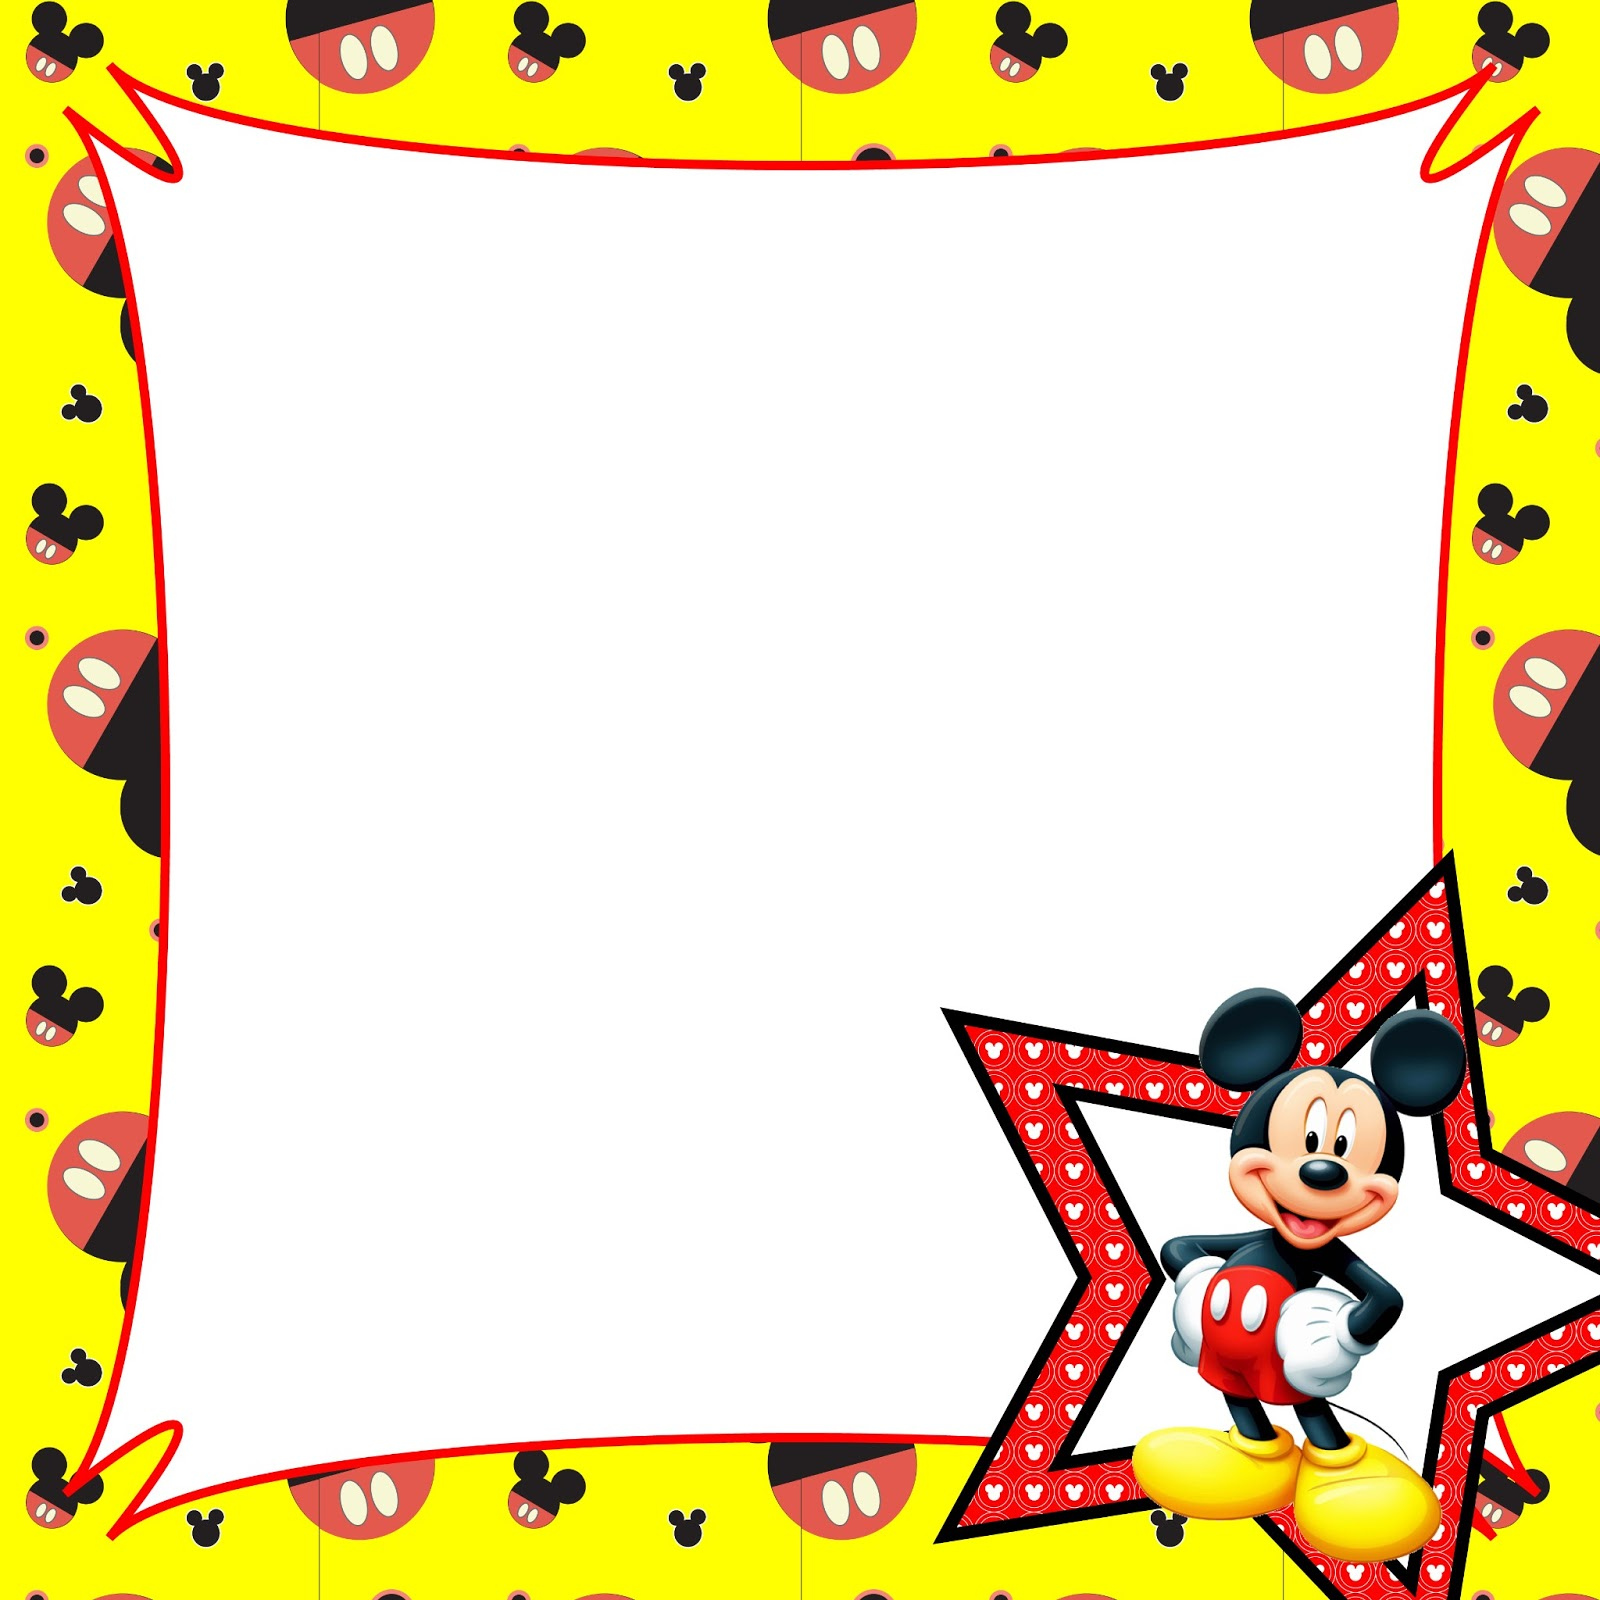 Disney Frame Wall Clipart.